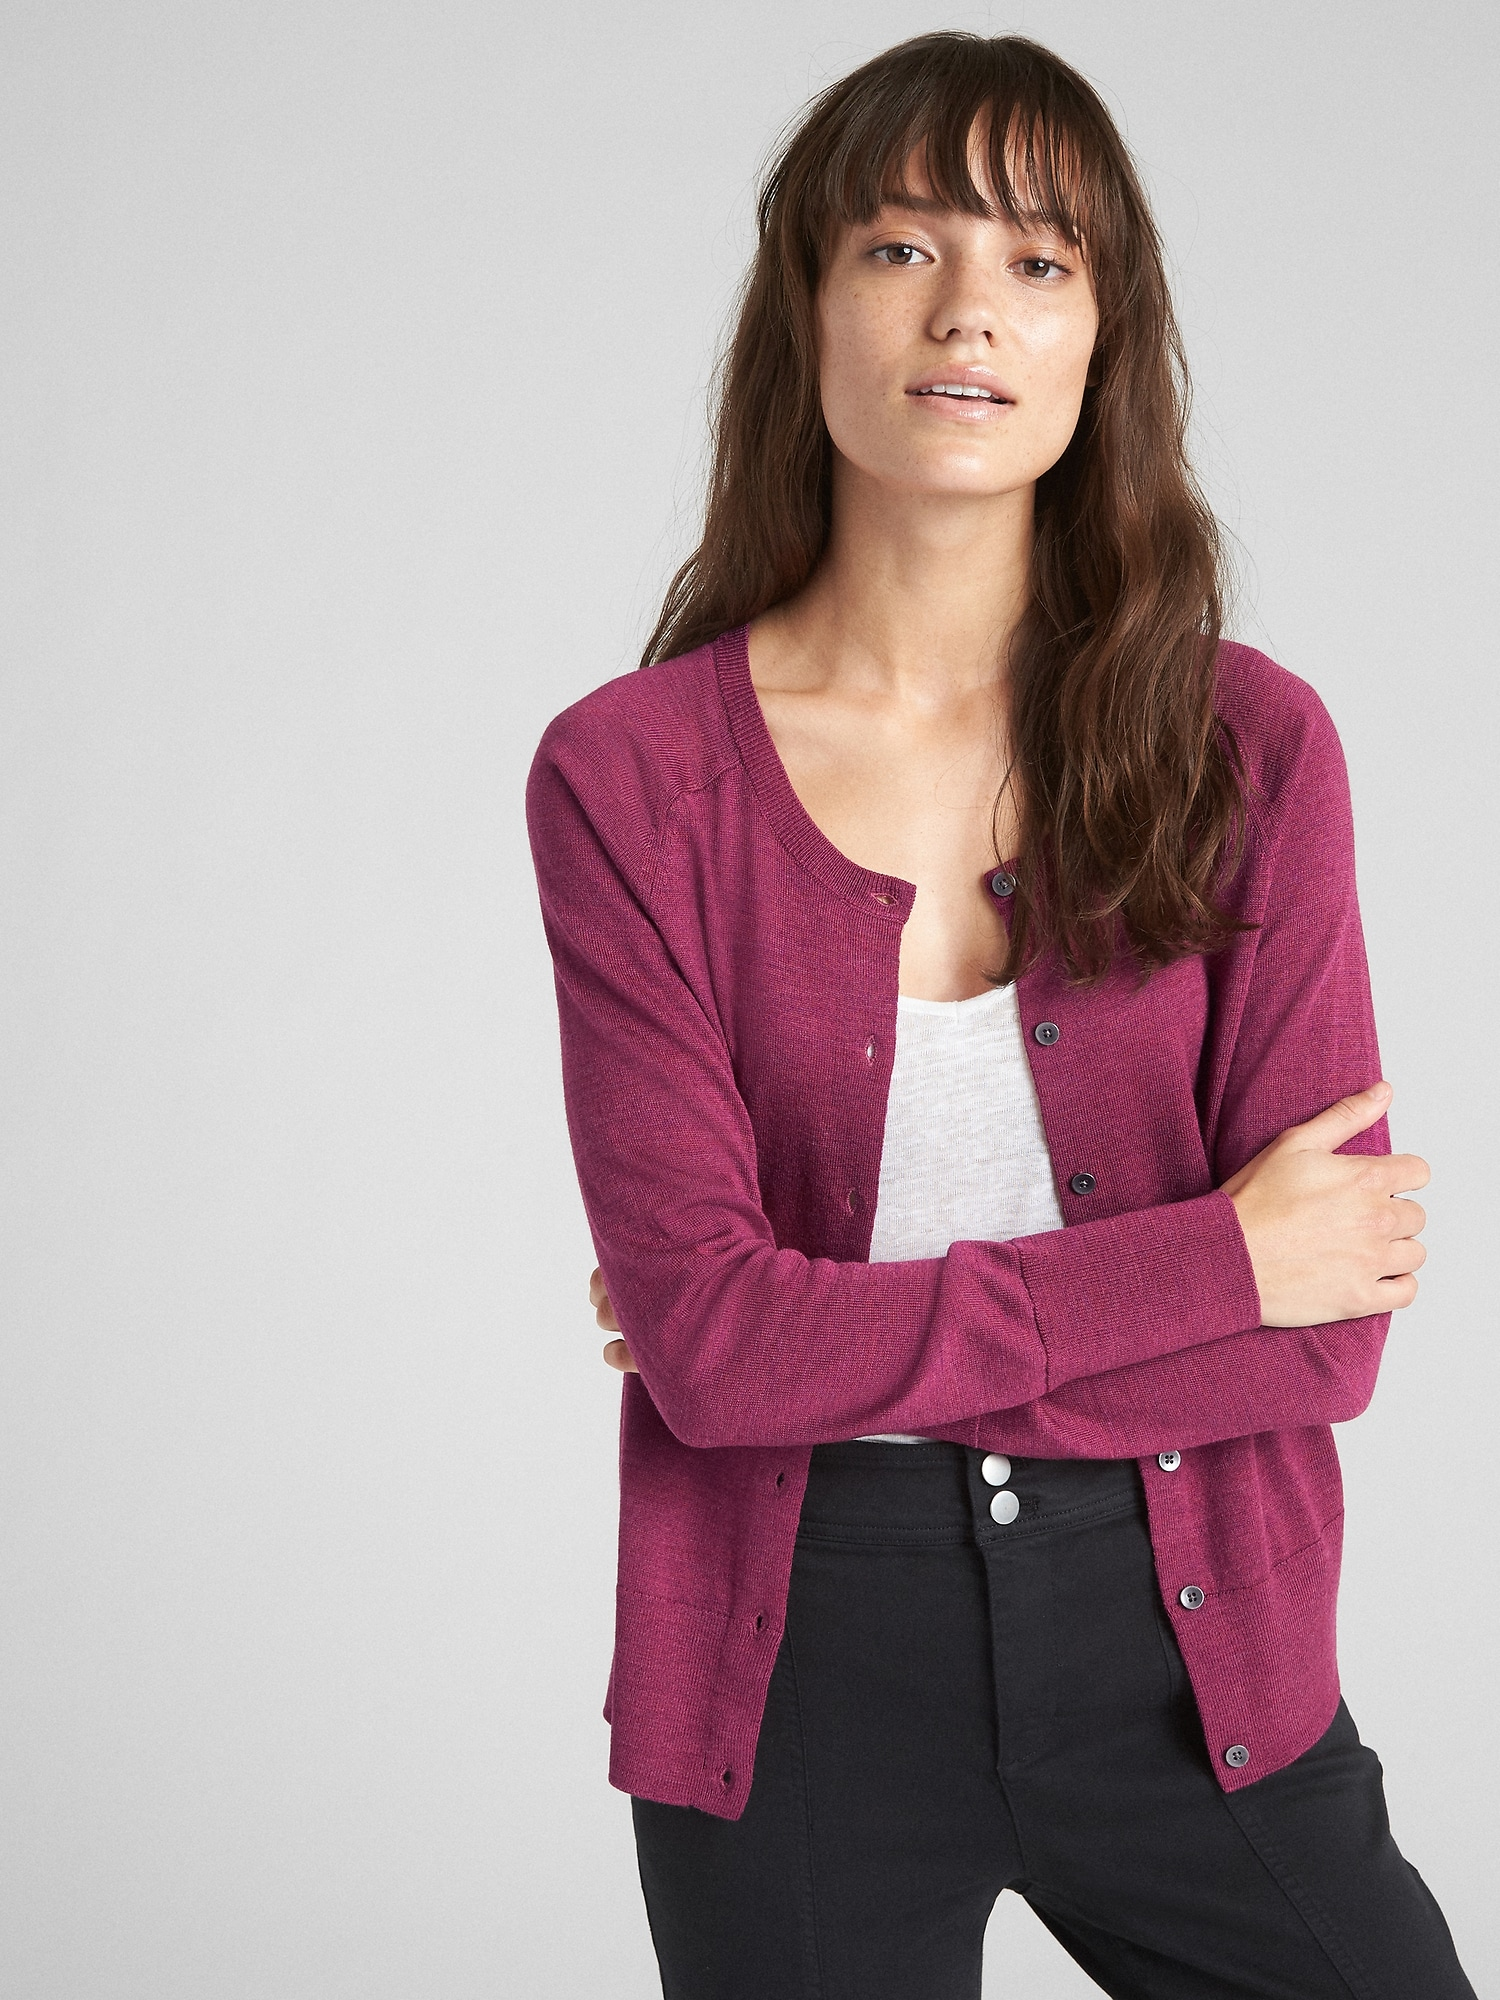 b2eca1fd2 Crewneck Cardigan Sweater in Merino Wool